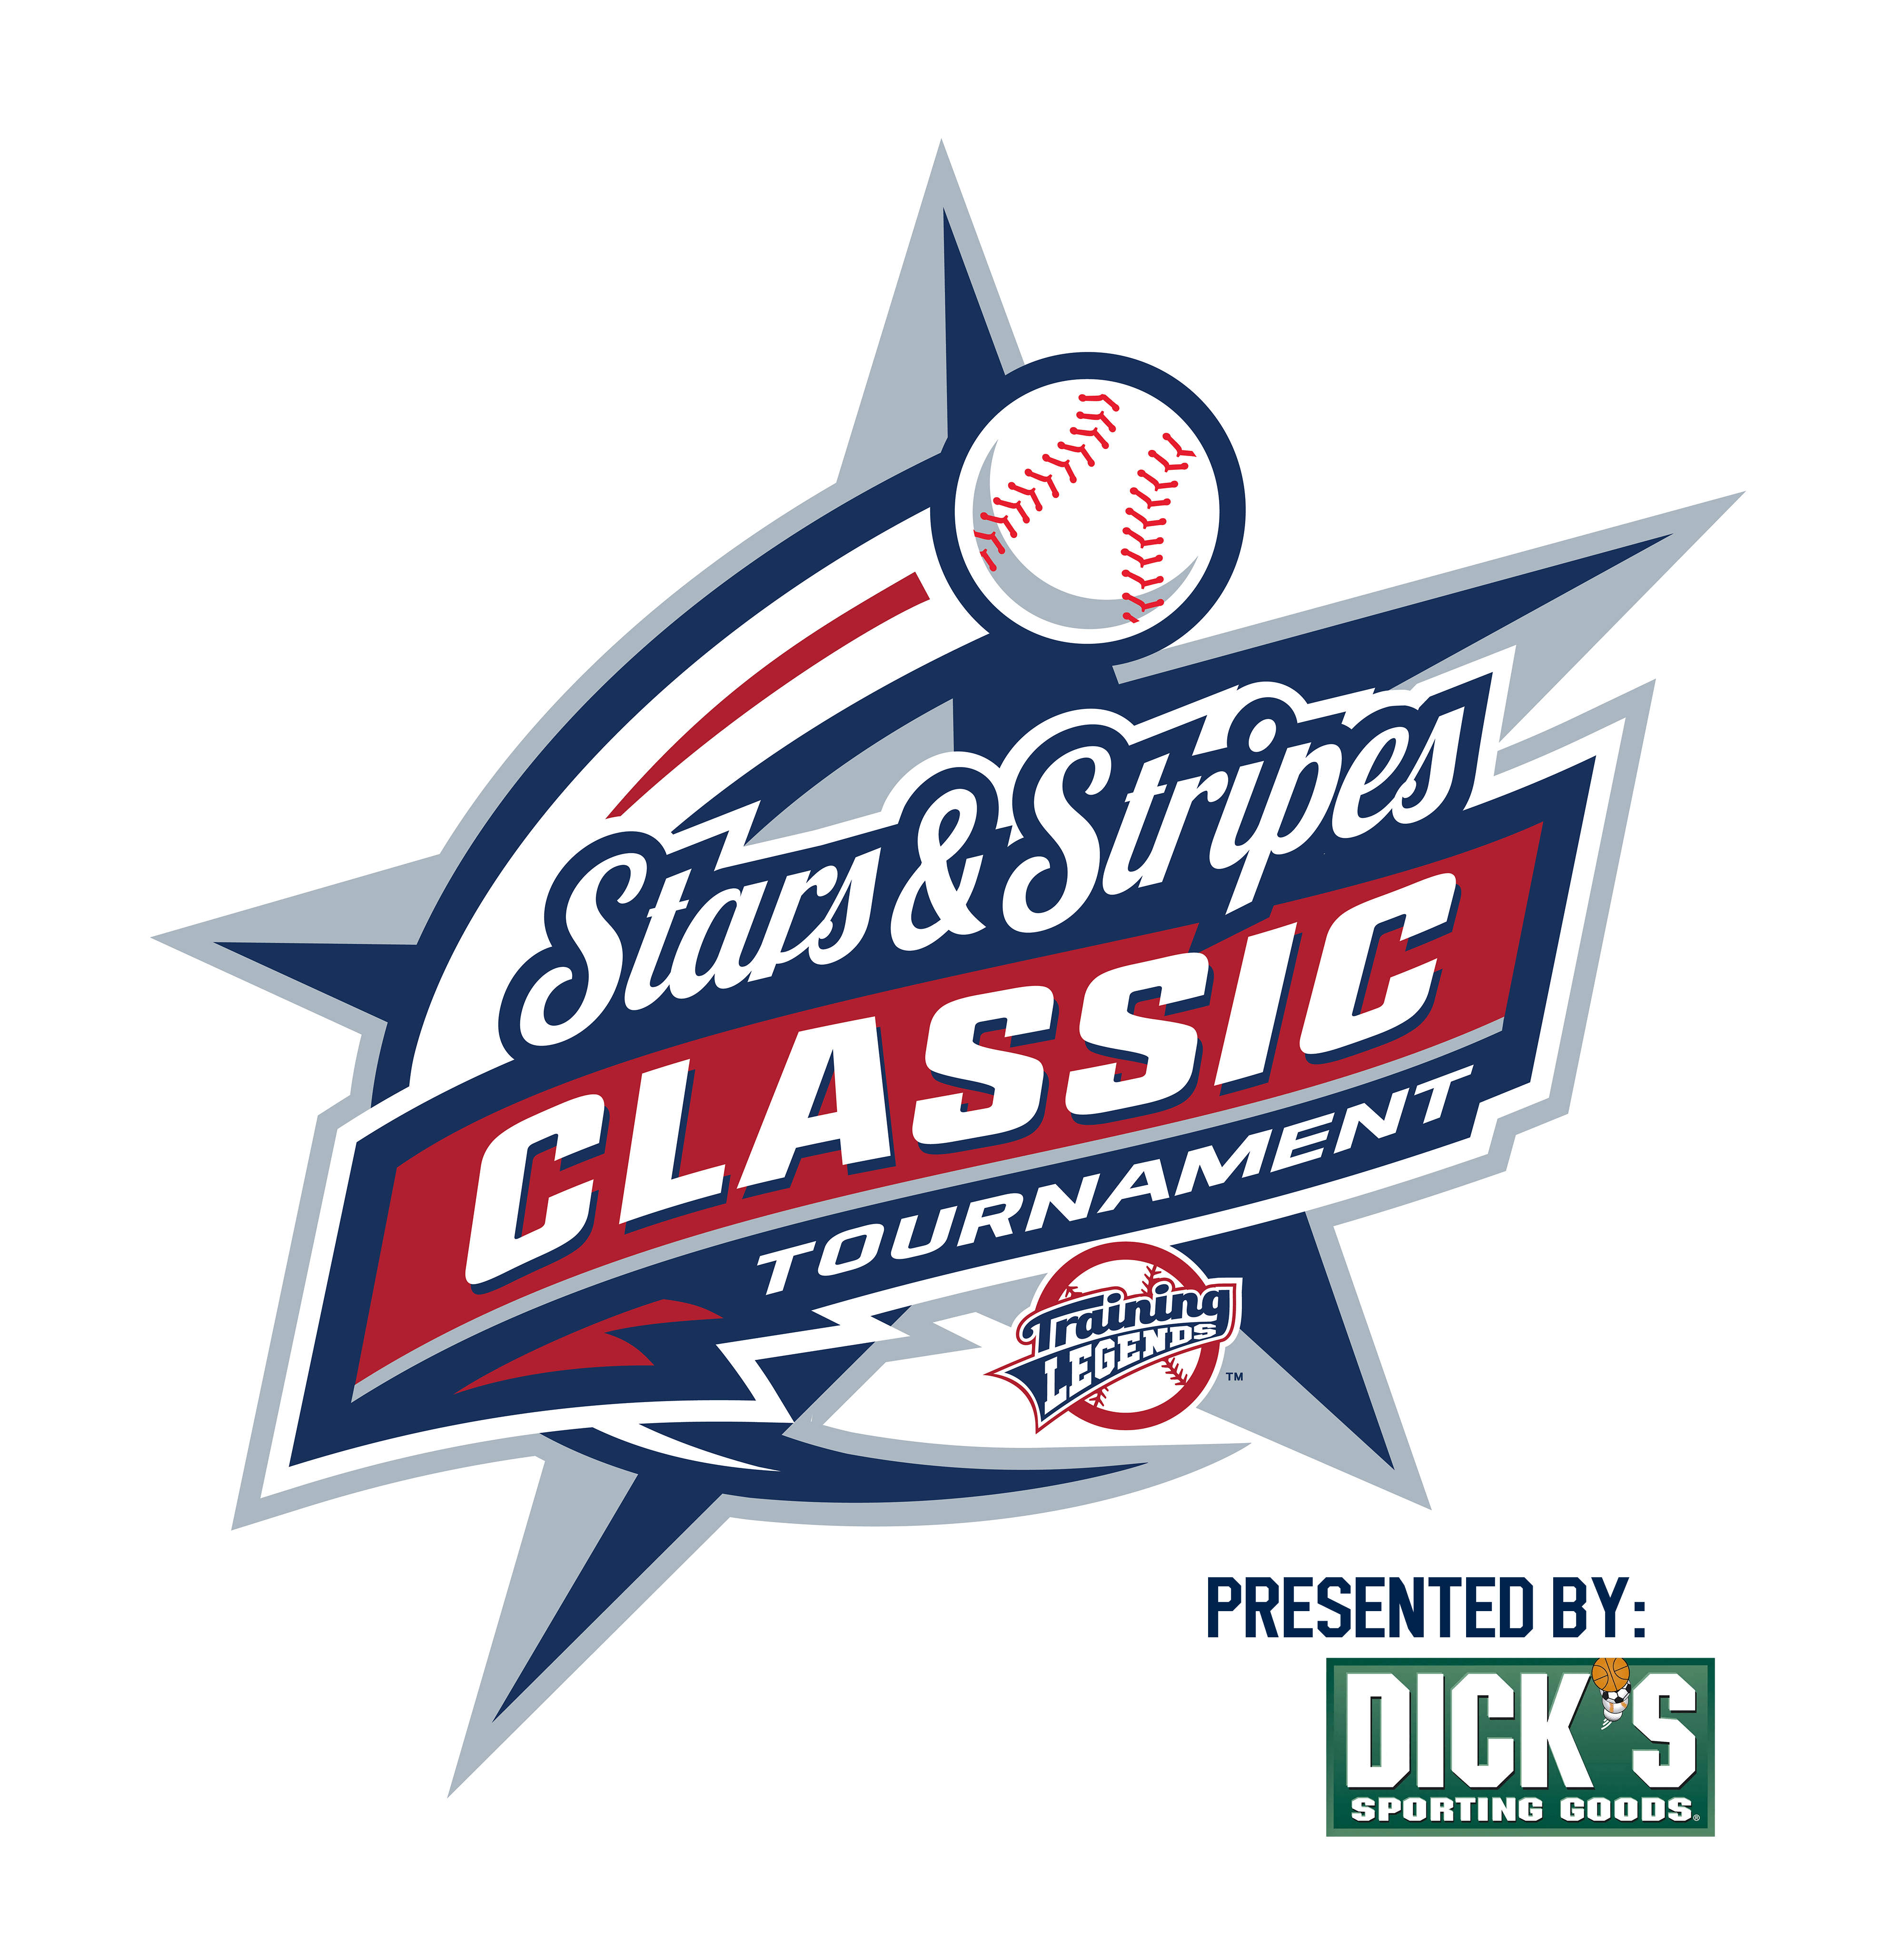 Stars and Stripes Classic (All Stars): Presented by Dick's Sporting Goods | Rings Event